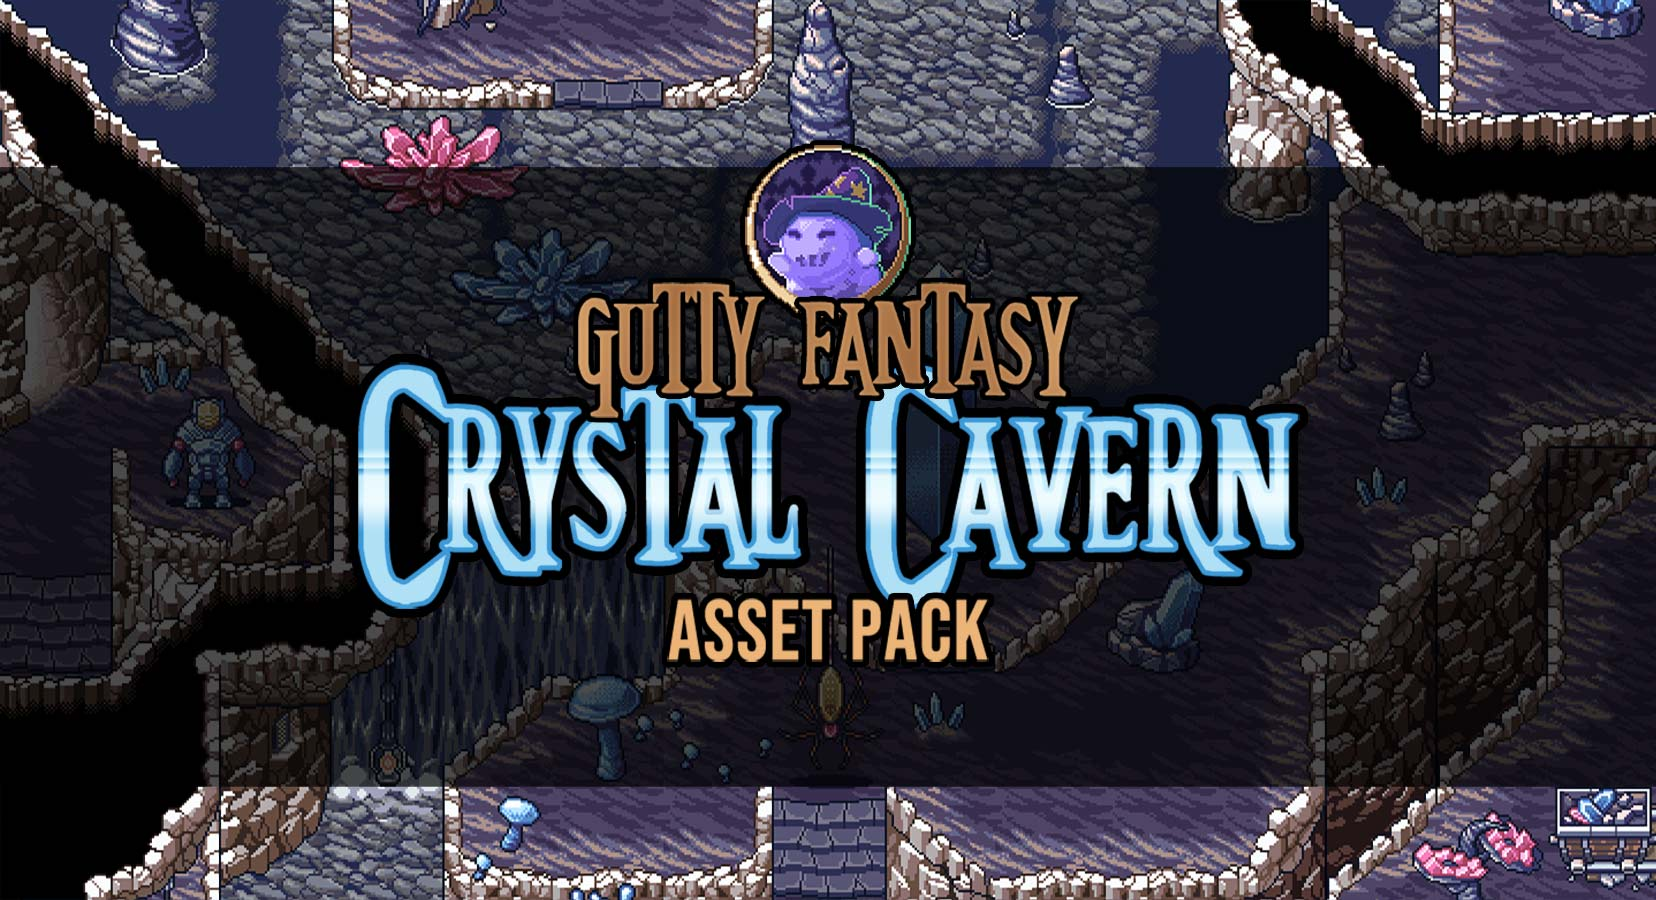 Crystal Cavern Asset Pack